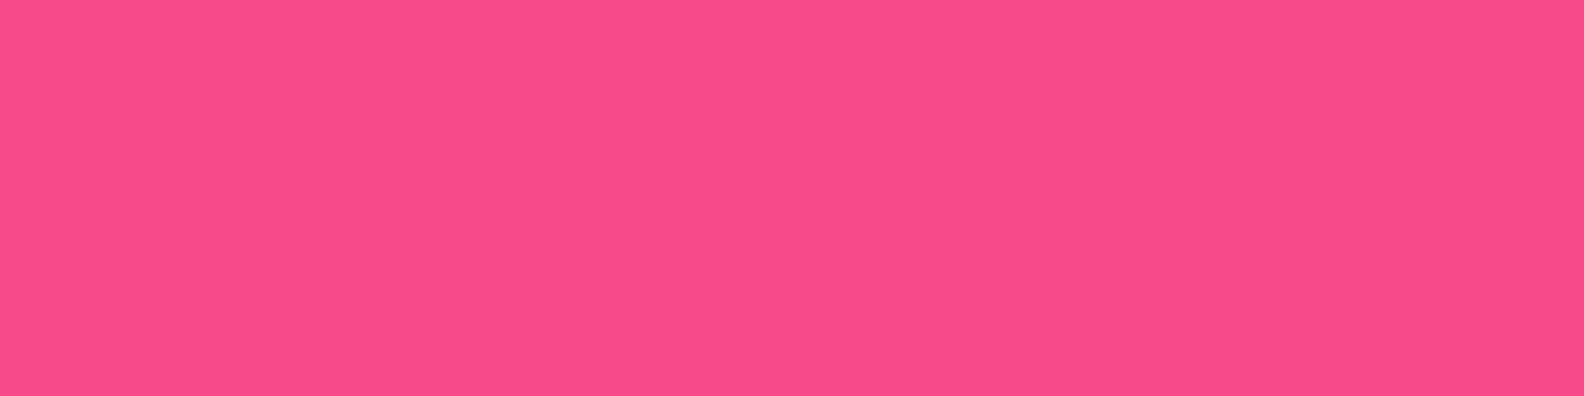 1584x396 French Rose Solid Color Background